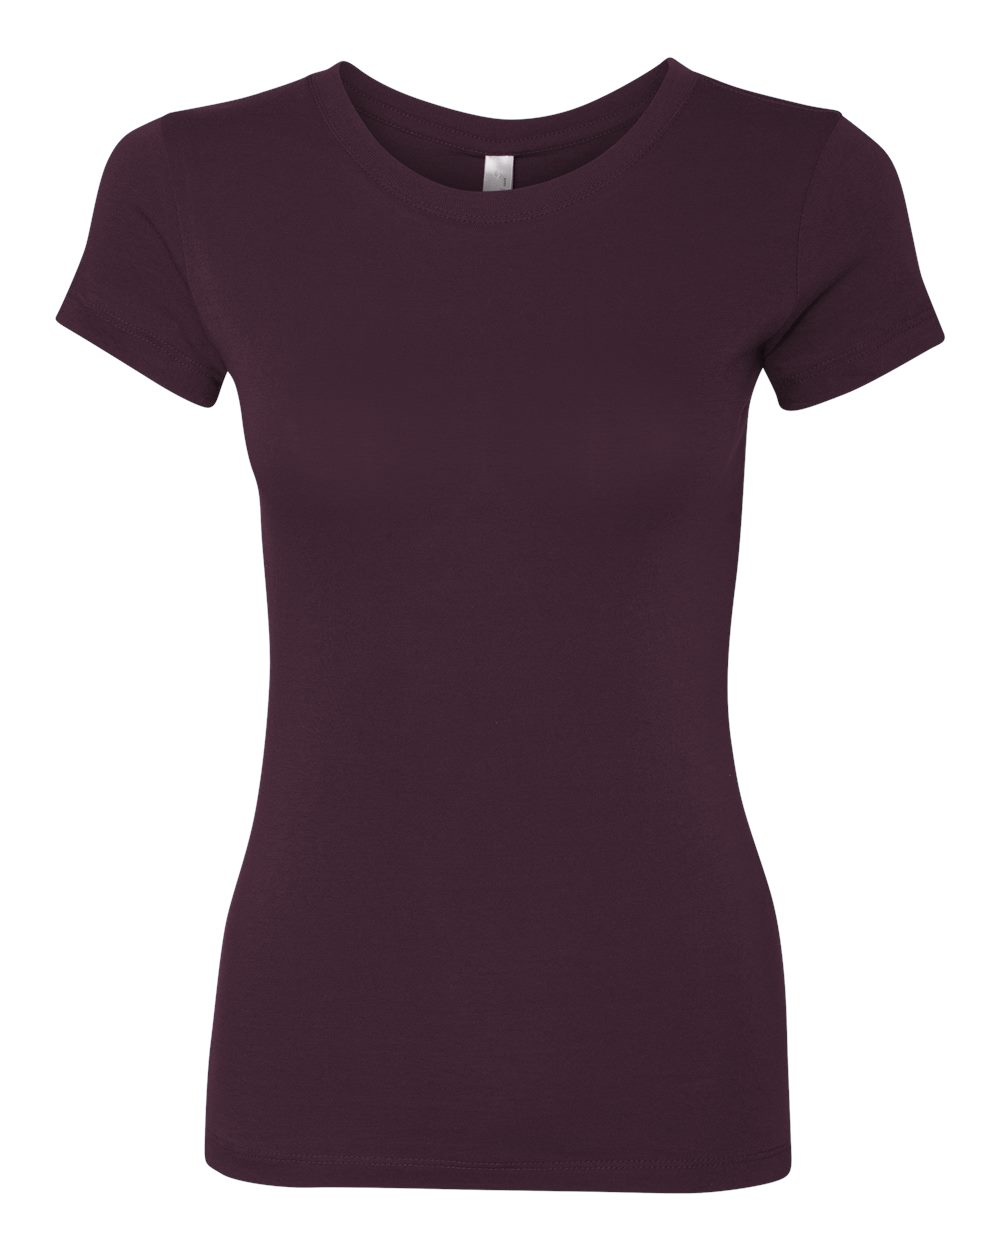 Next_Level_3300L_Plum_Front_High.jpg